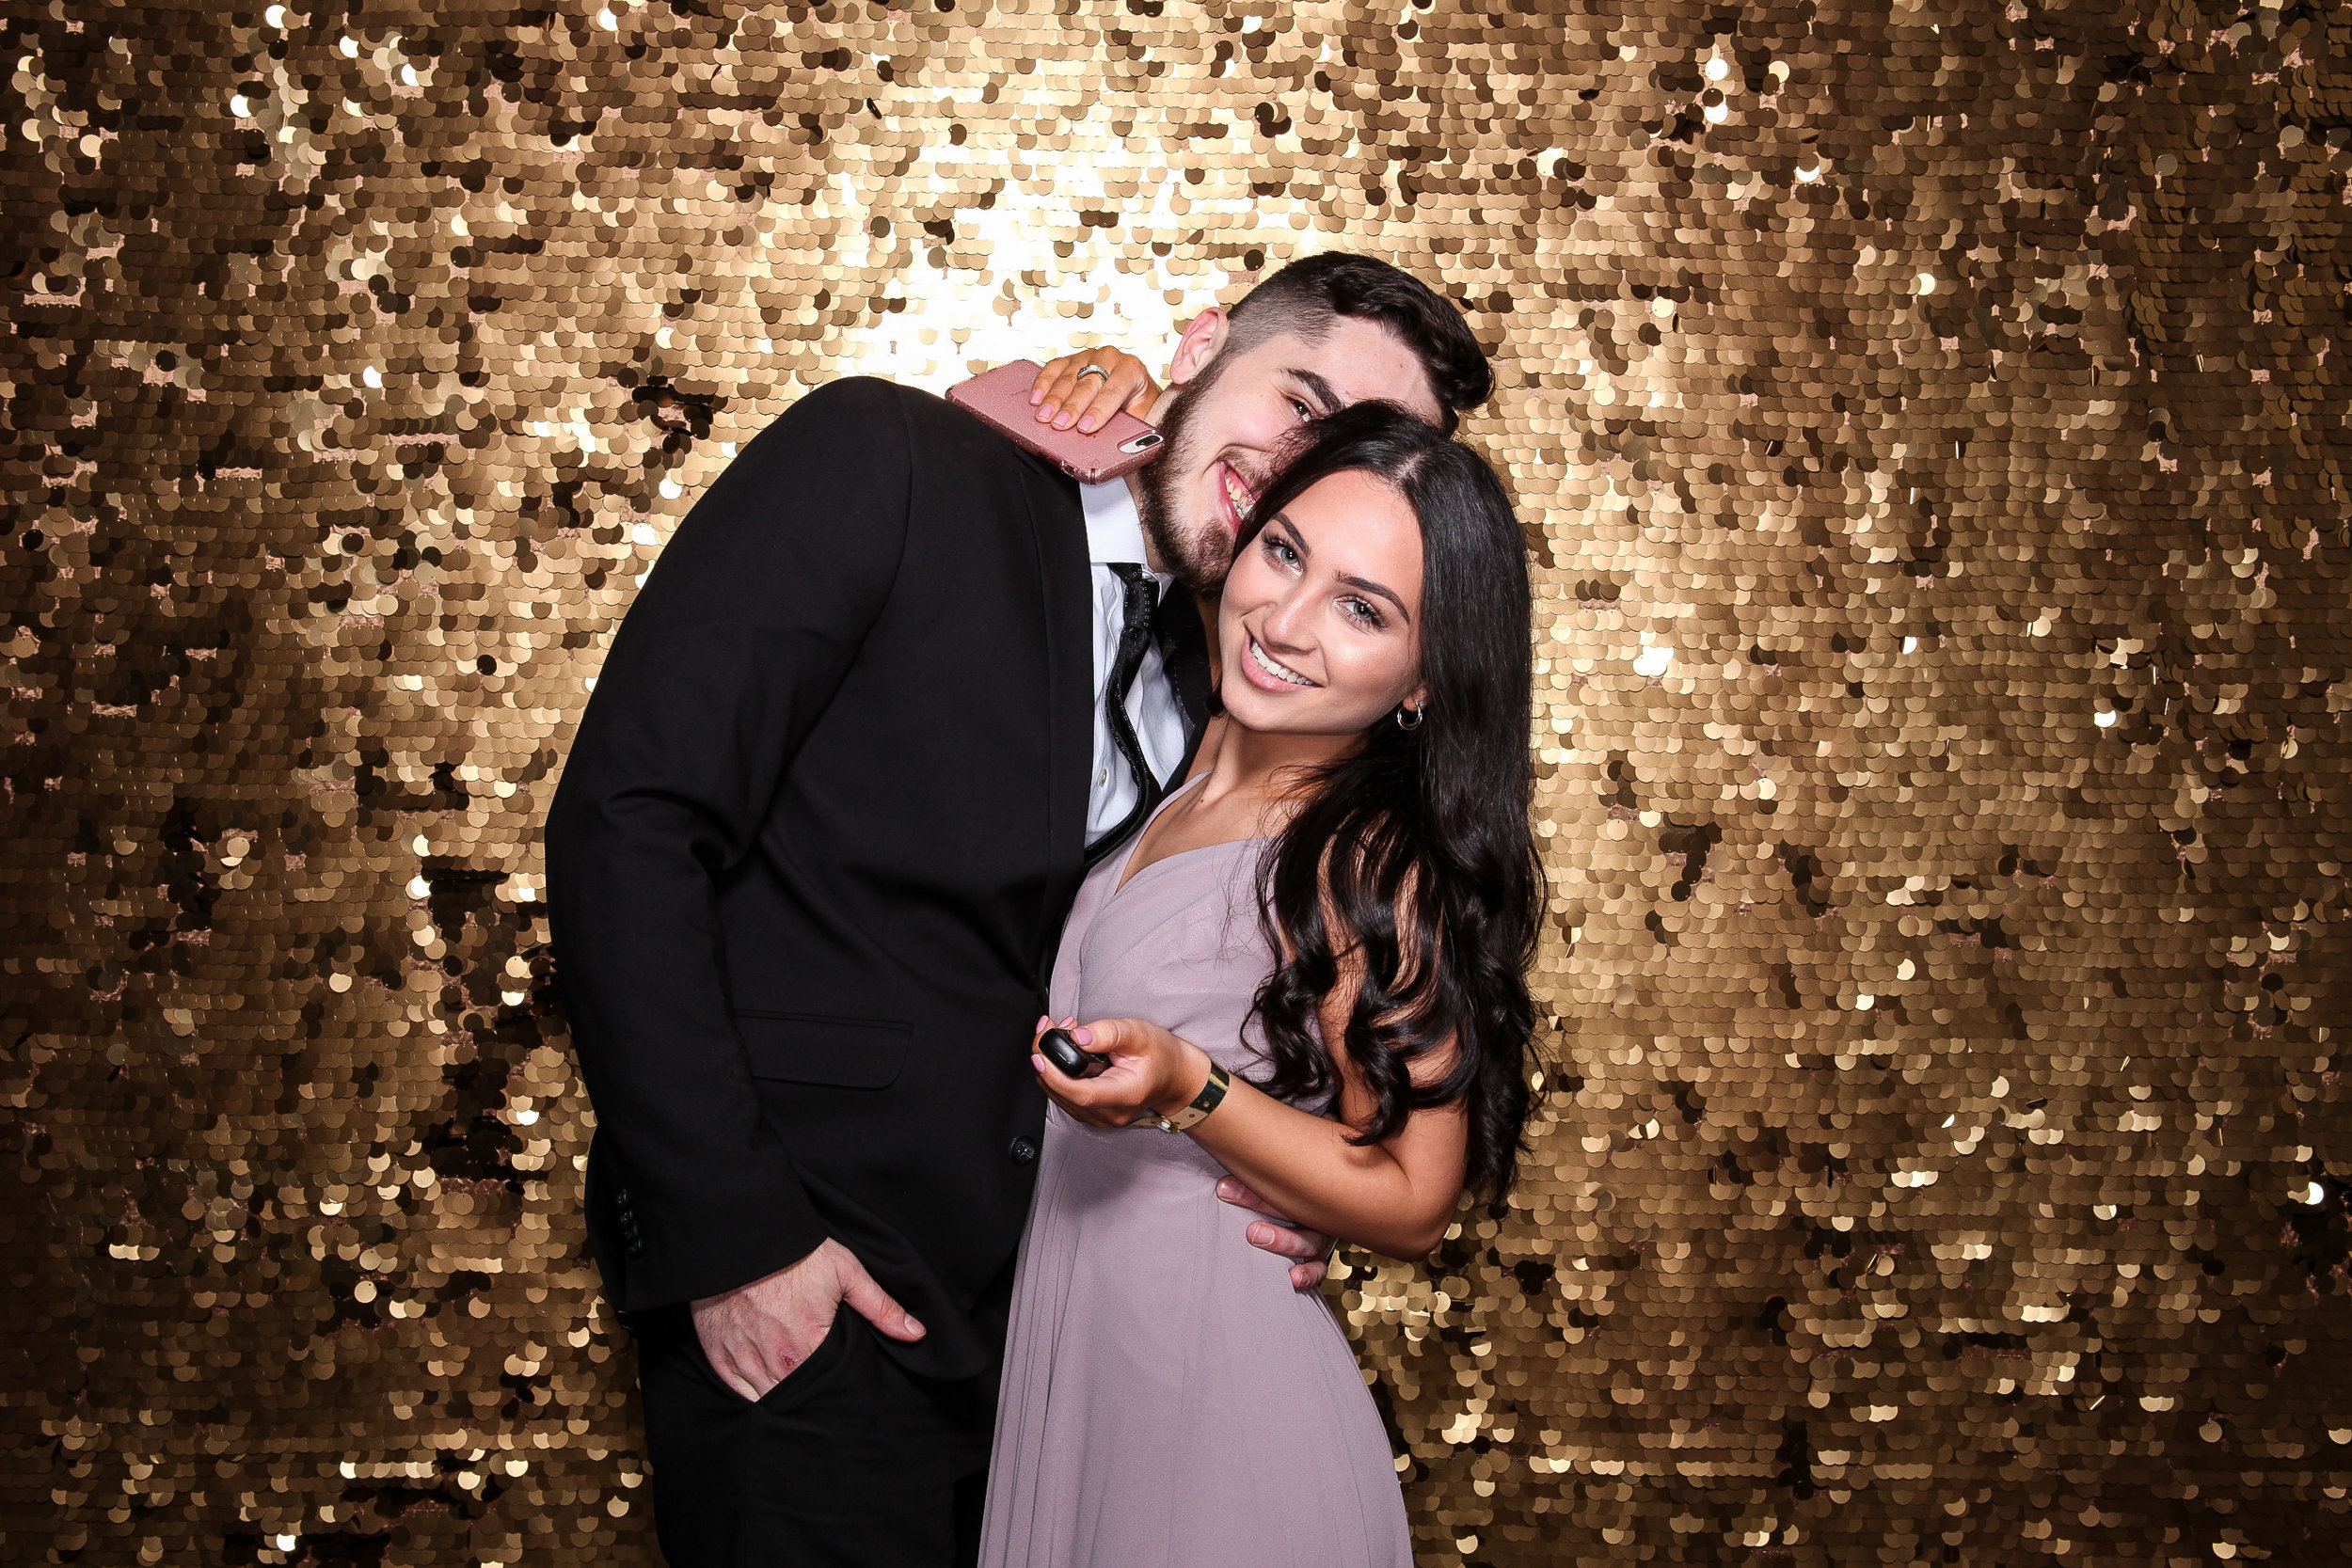 20190503_Adelphi_Senior_Formal-089.jpg